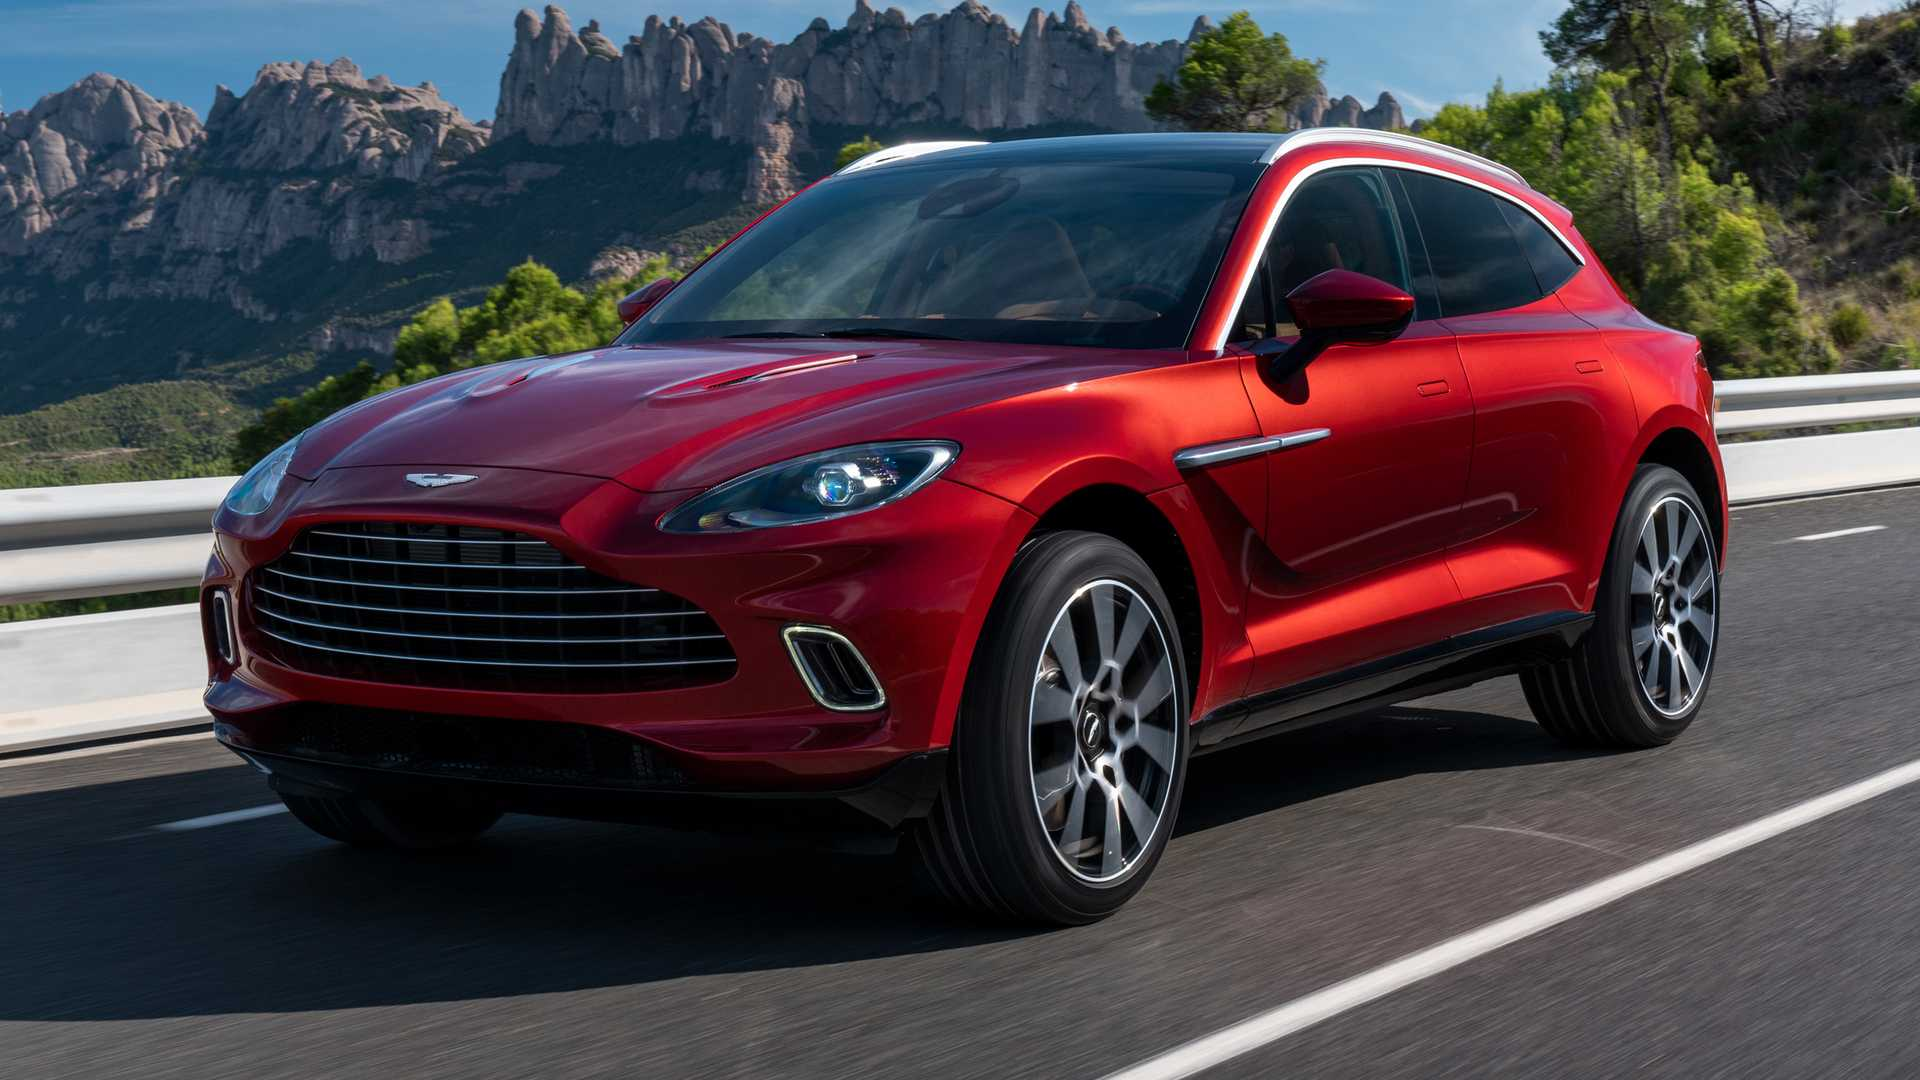 2021 Aston Martin DBX Debuts With 542-HP V8, $192,986 Starting Price